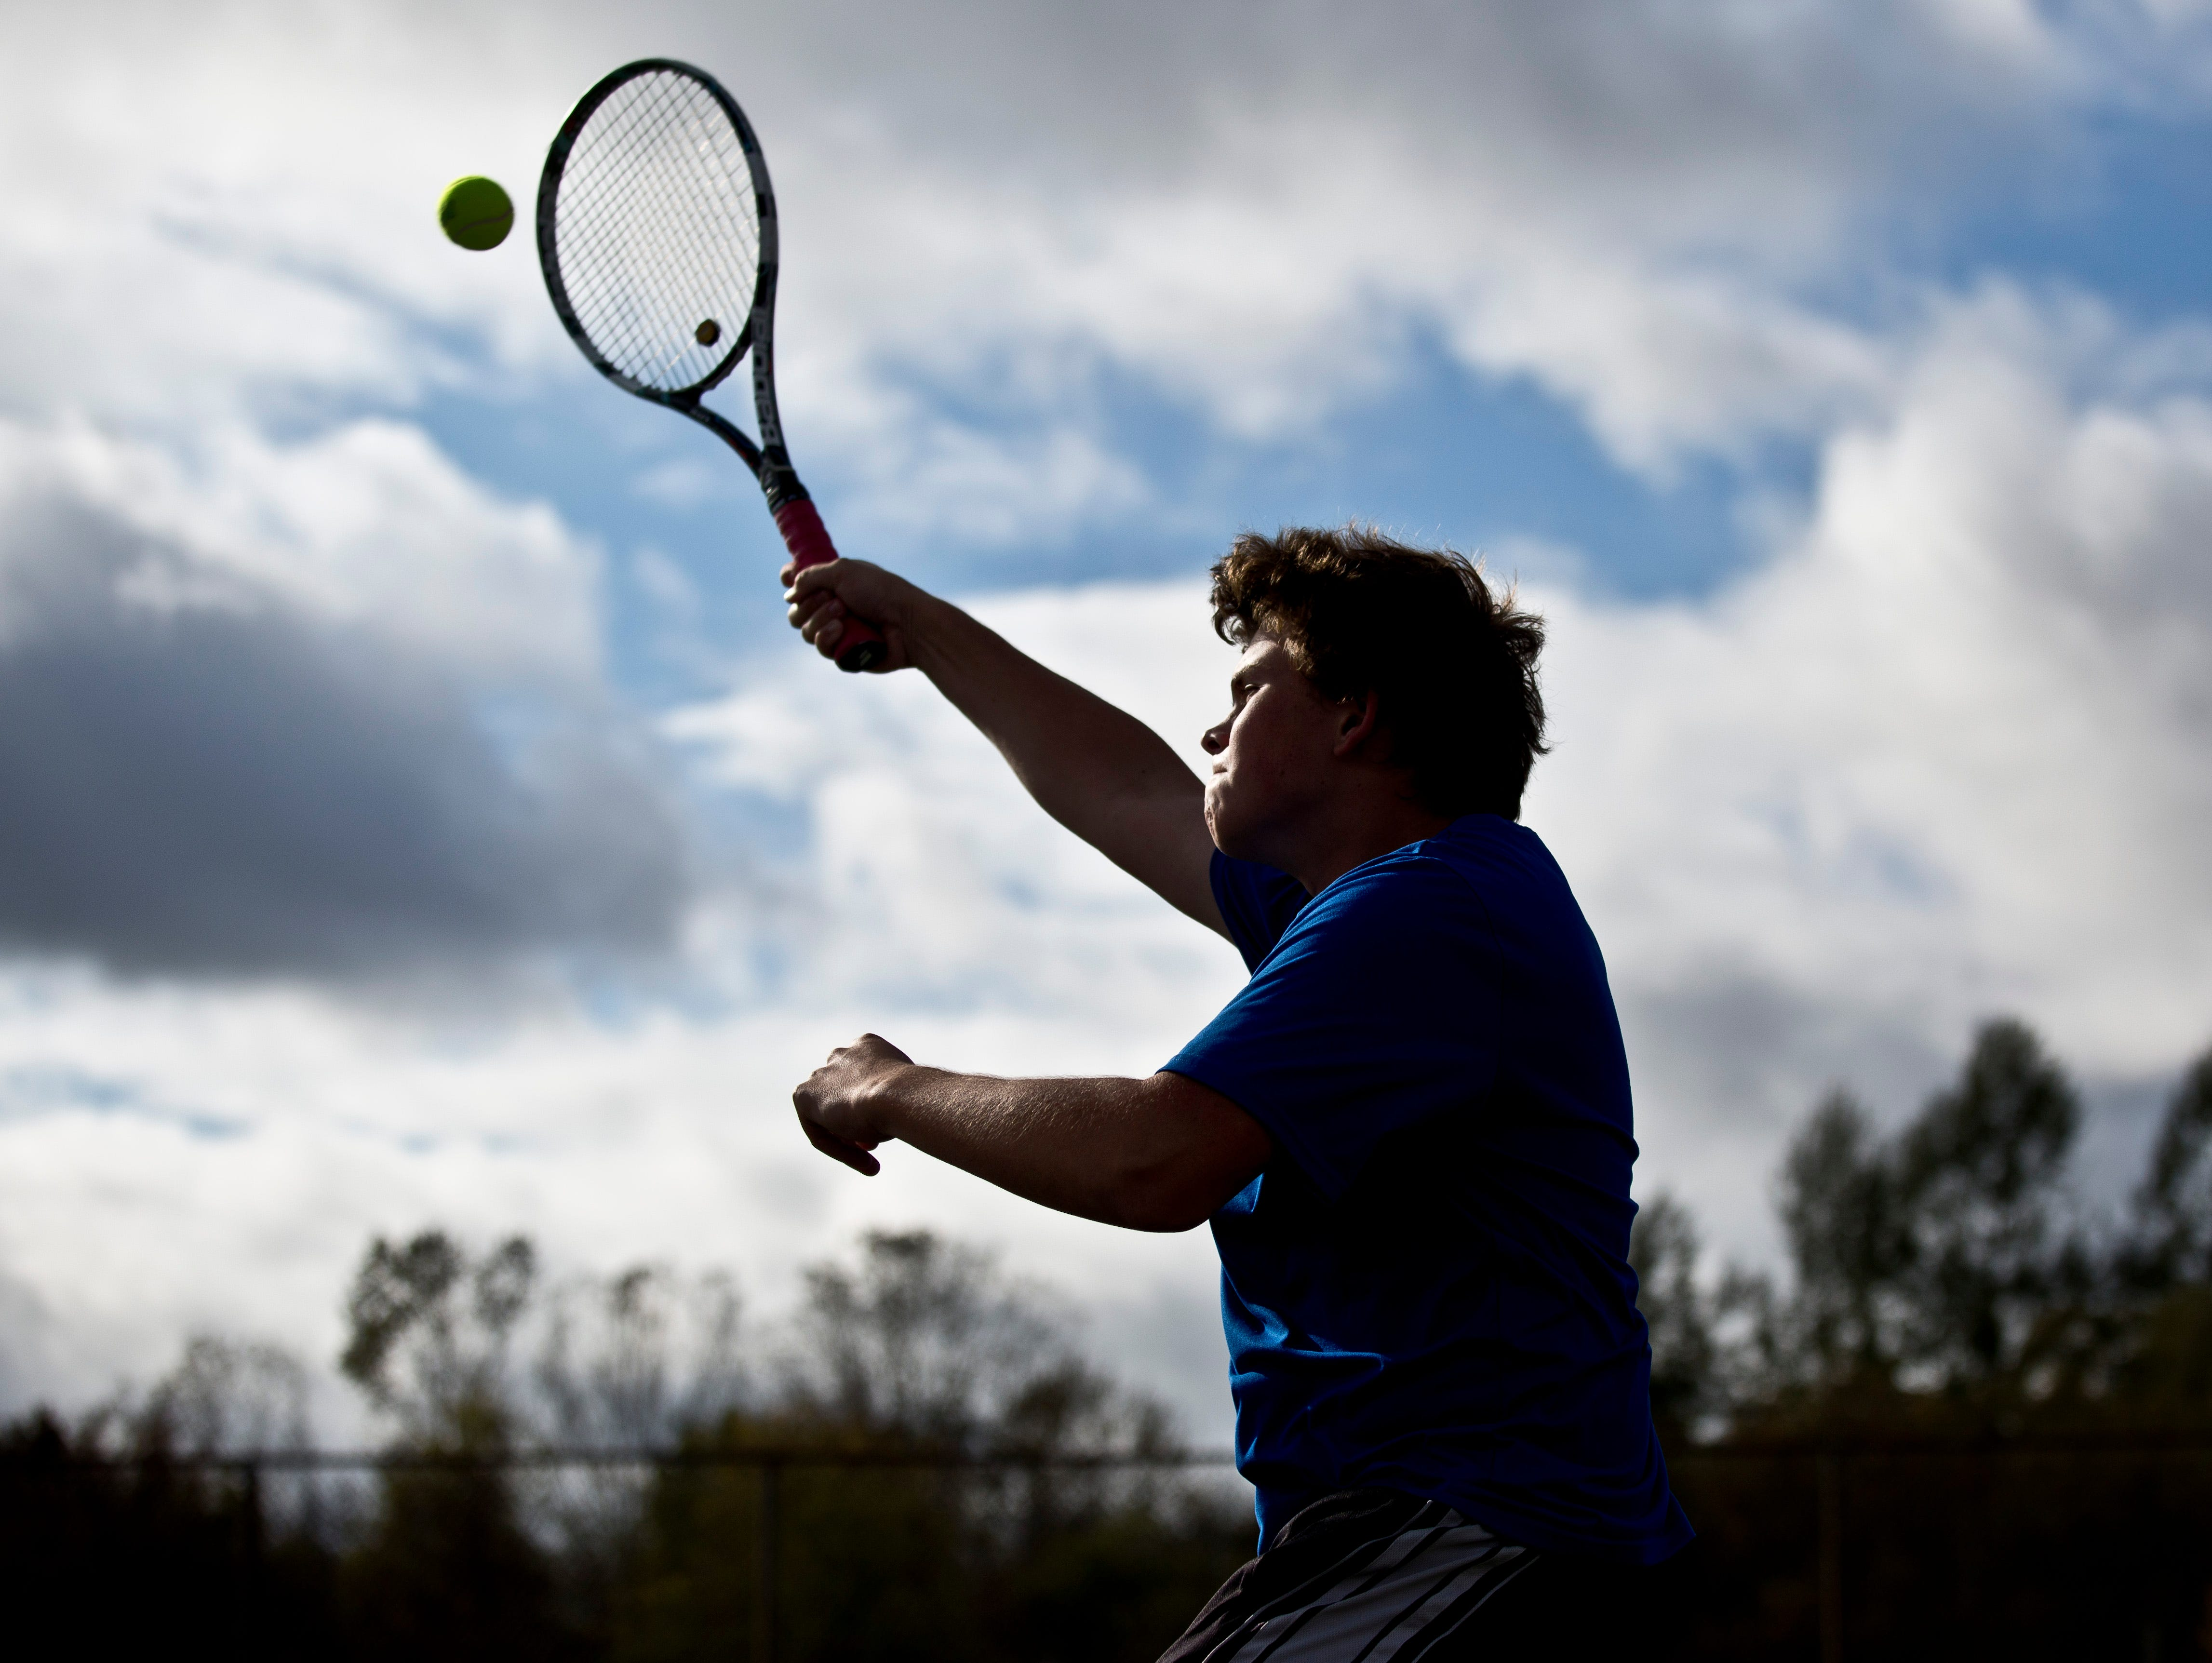 Junior Ben Offner jumps to return the ball during tennis practice Tuesday, October 13, 2015 at Armada High School.